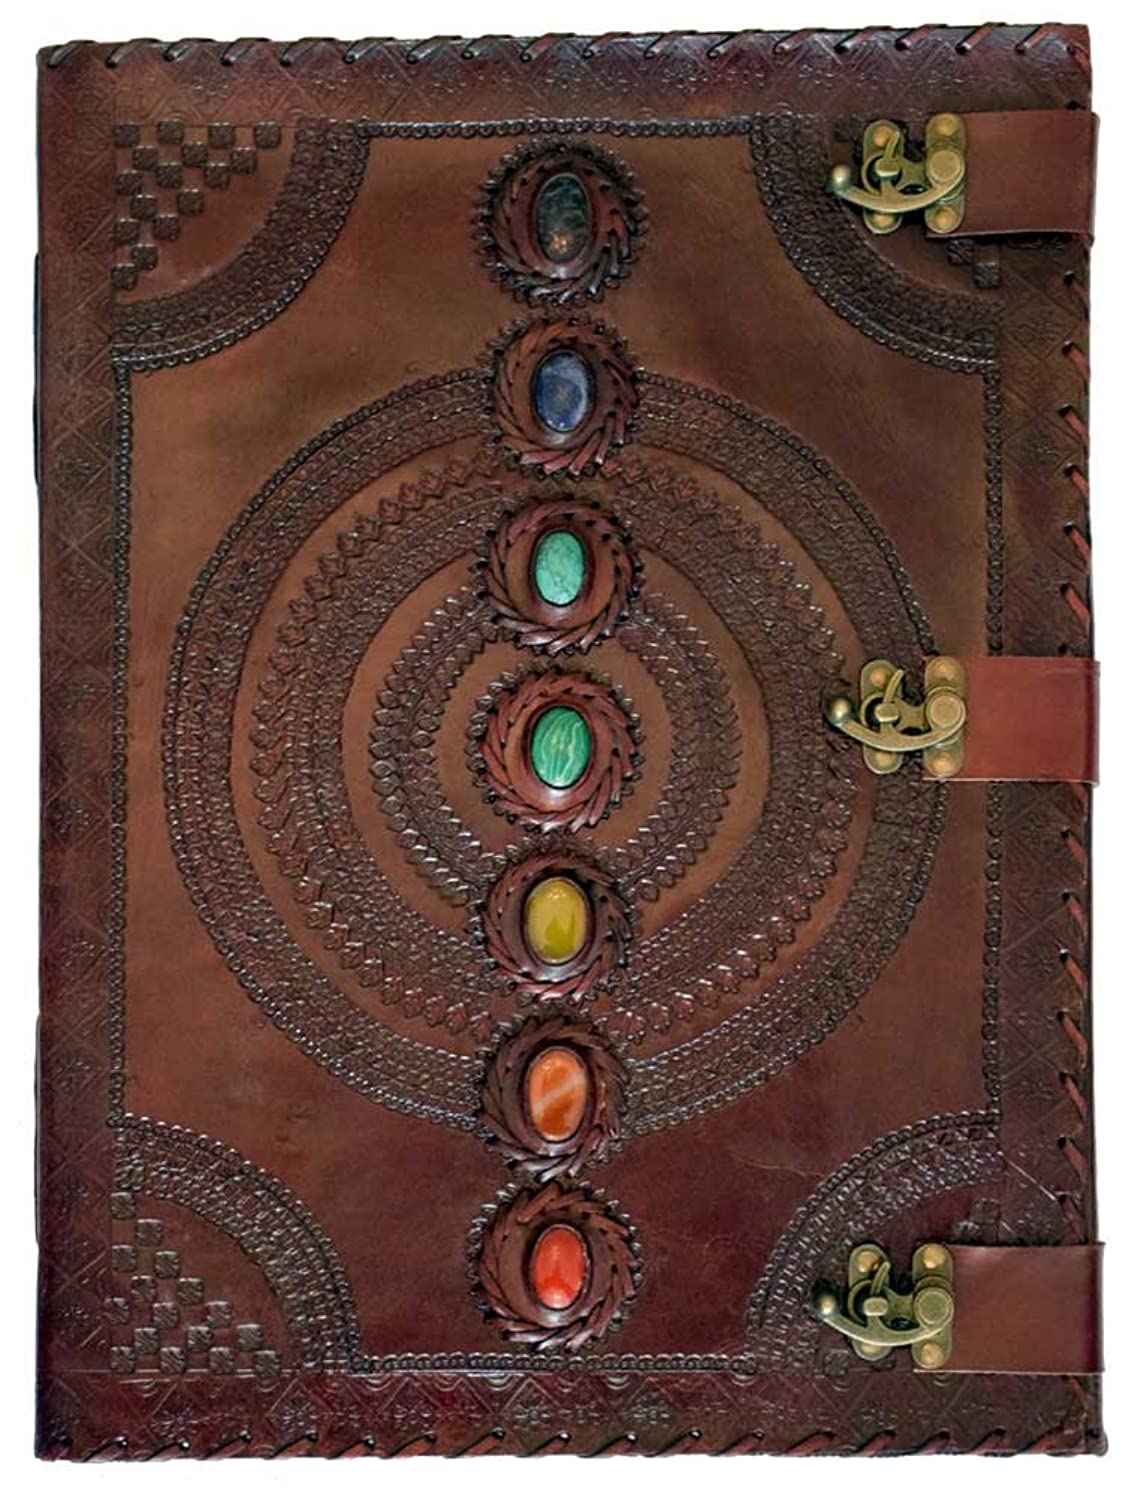 Leather Embossed Chakra Stones Journal 13.5